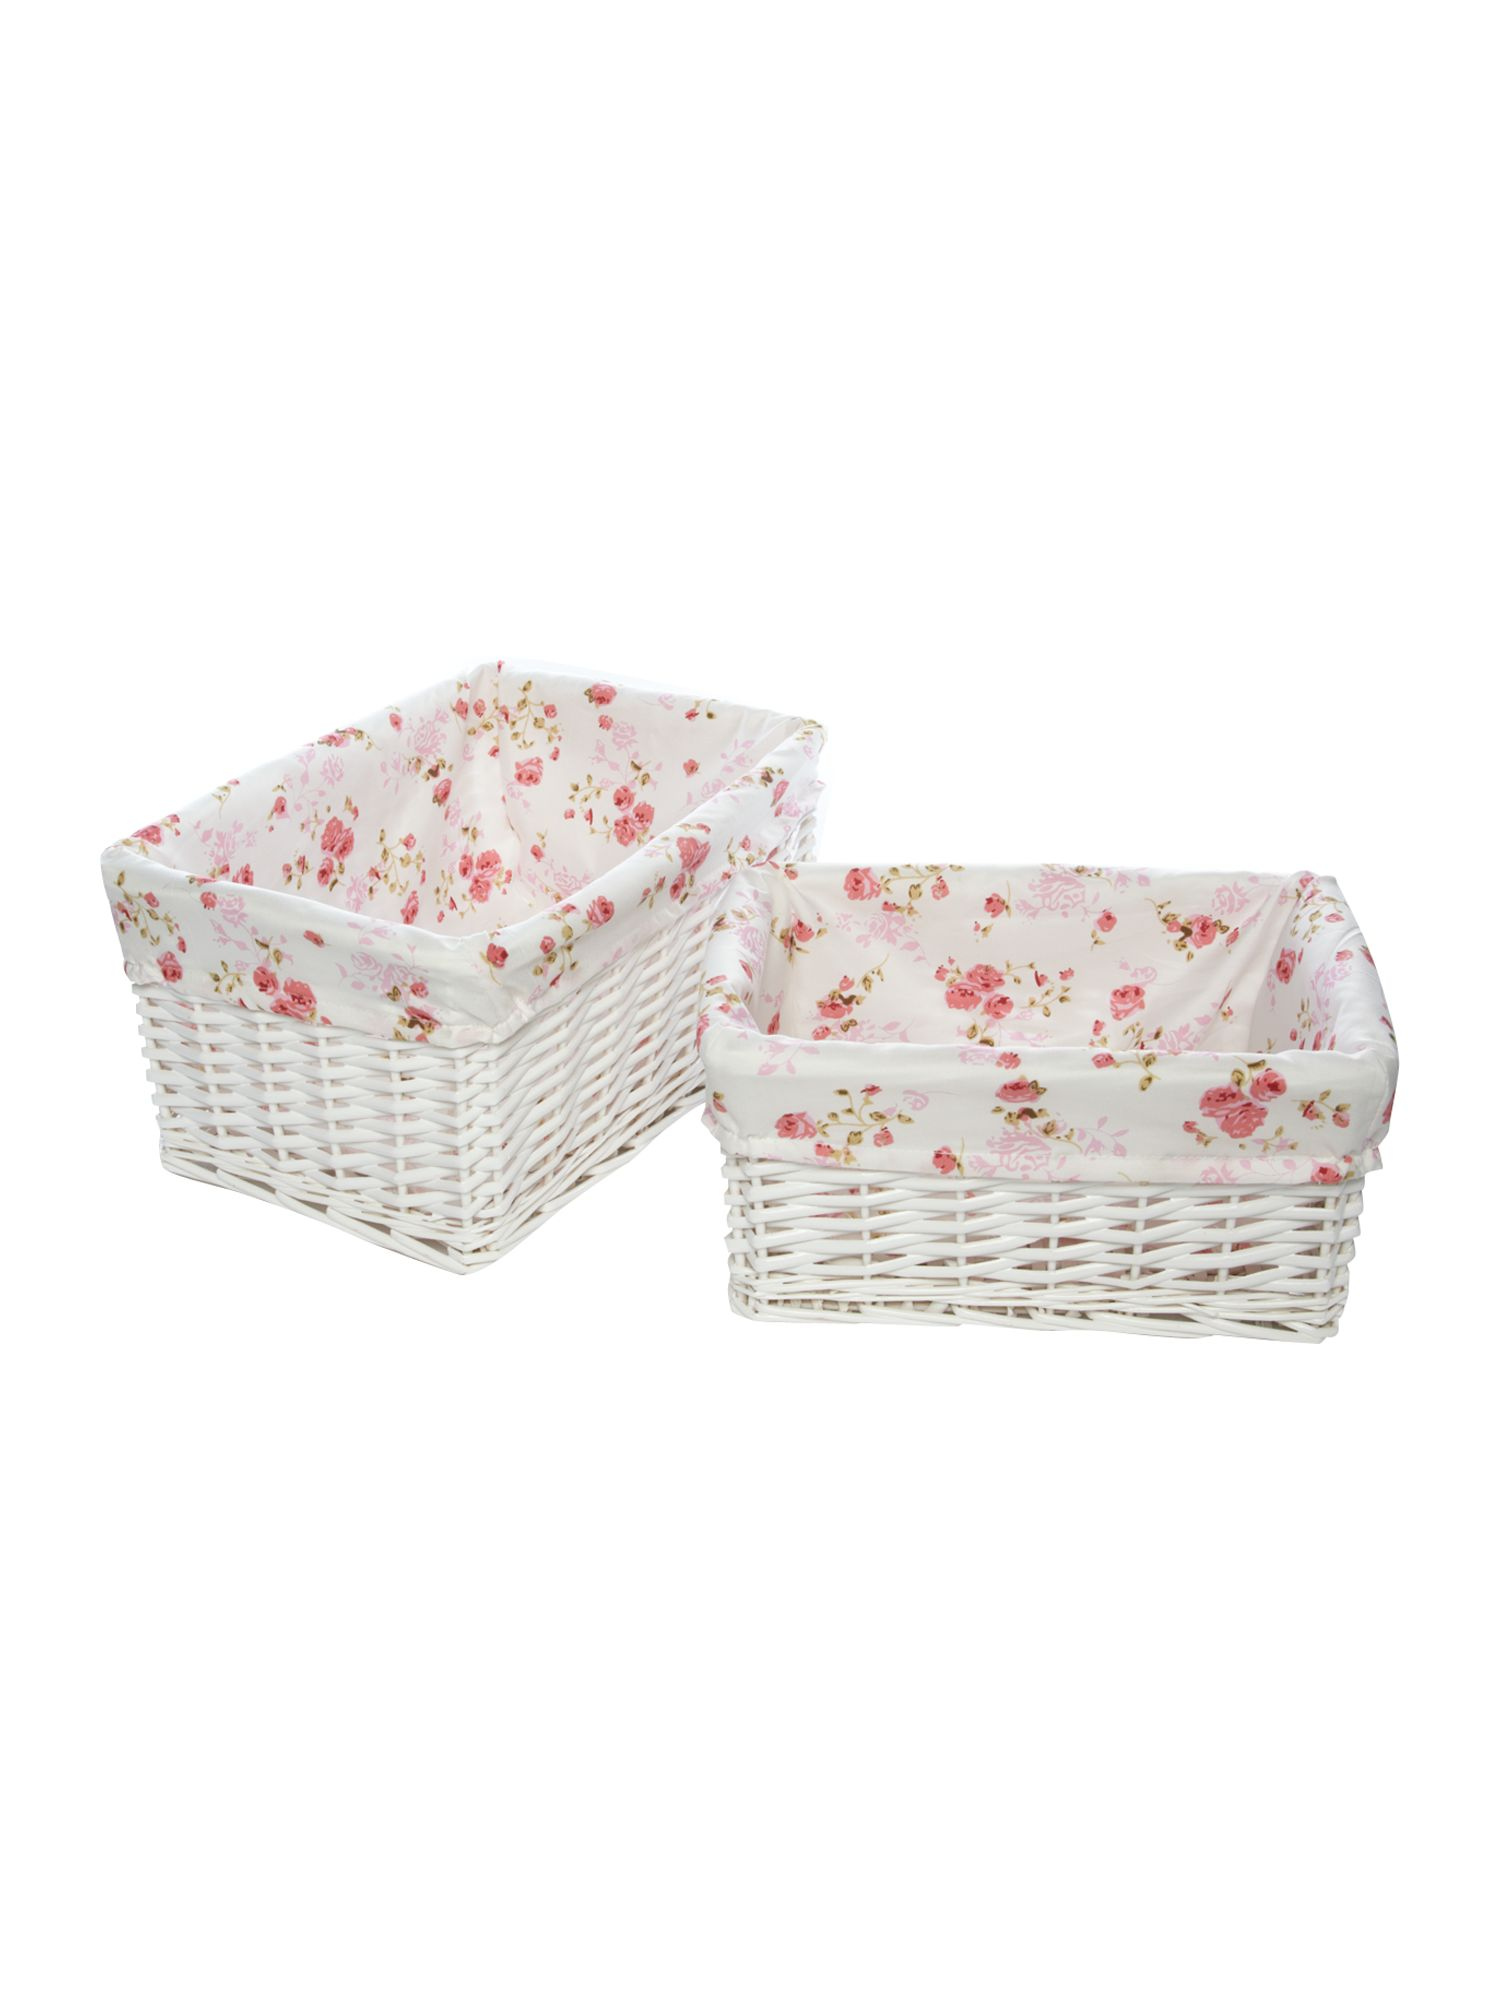 Vintage Floral laundry and storage range